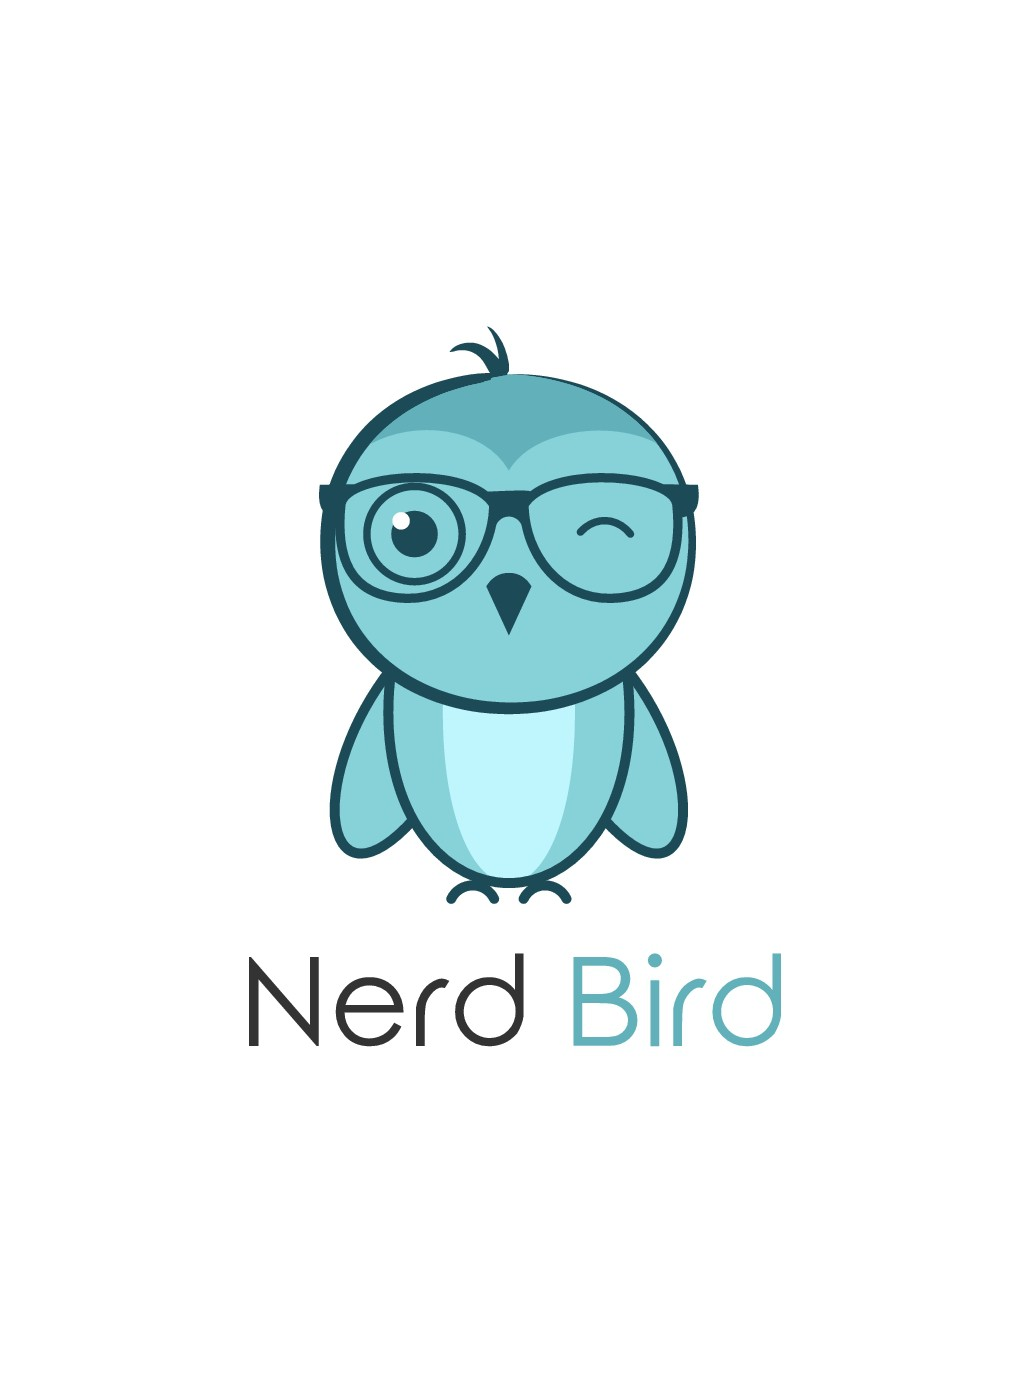 Design a logo for Nerd Bird (nerds are cool, stop bullying) campaign.